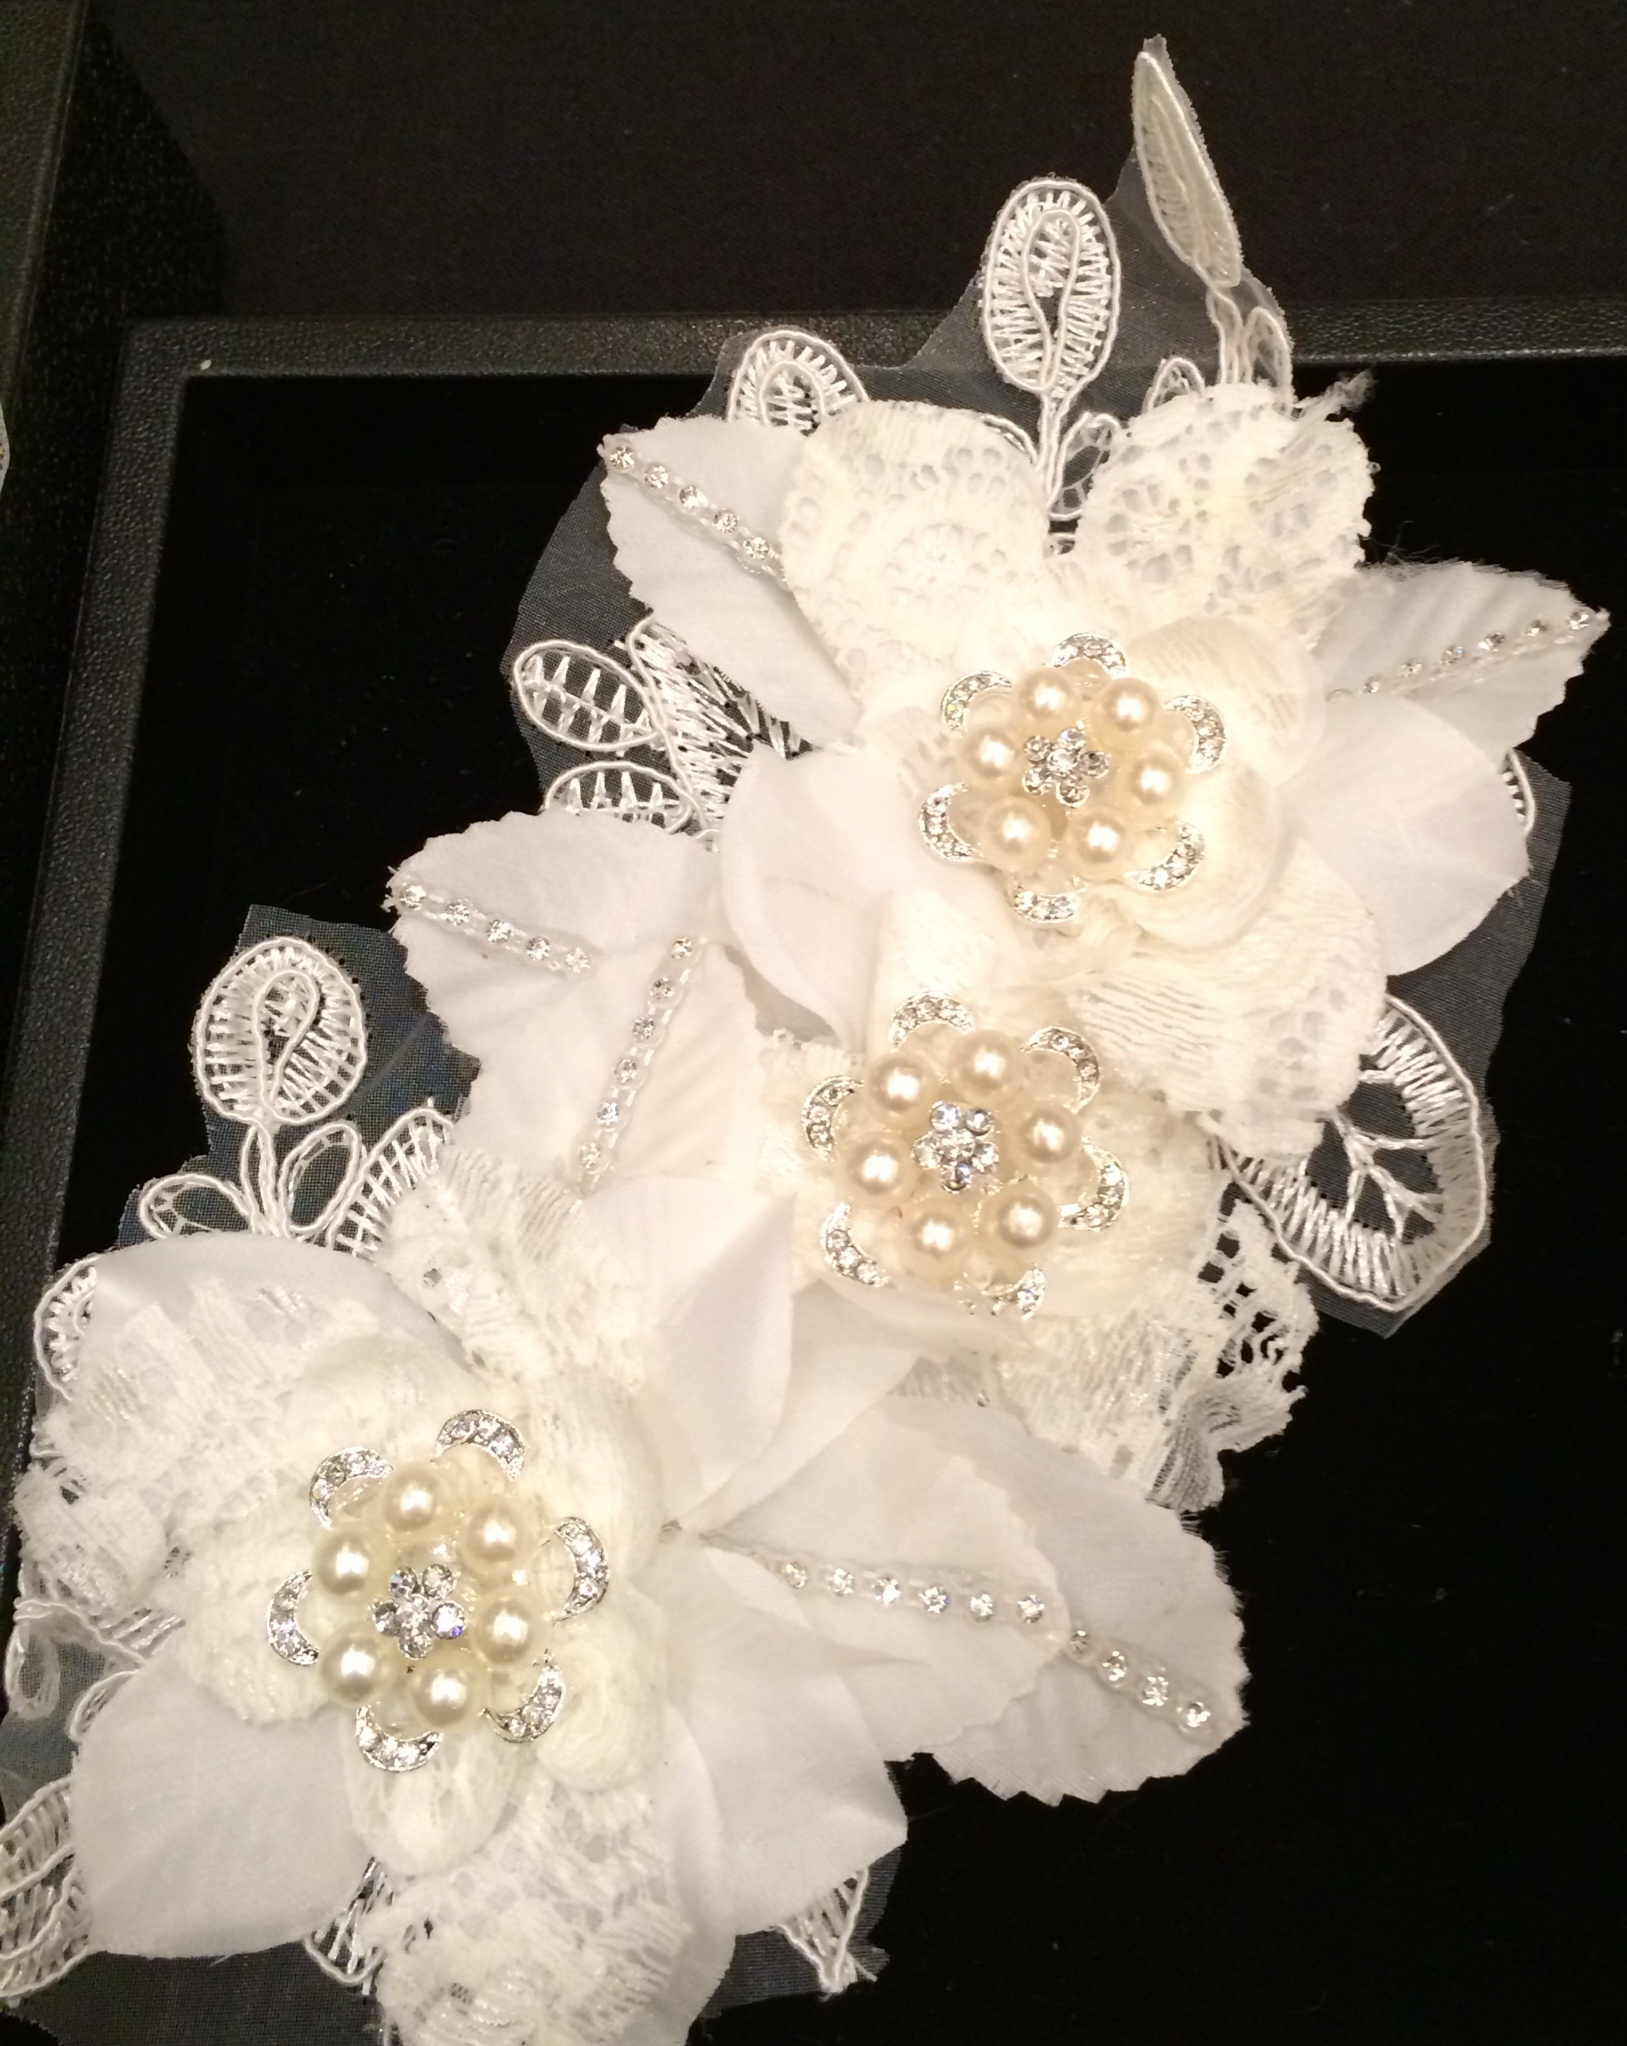 This is a beautiful headpiece with great detail. Sells for upward of $100 elsewhere. It's free at Teresa's for the bride.